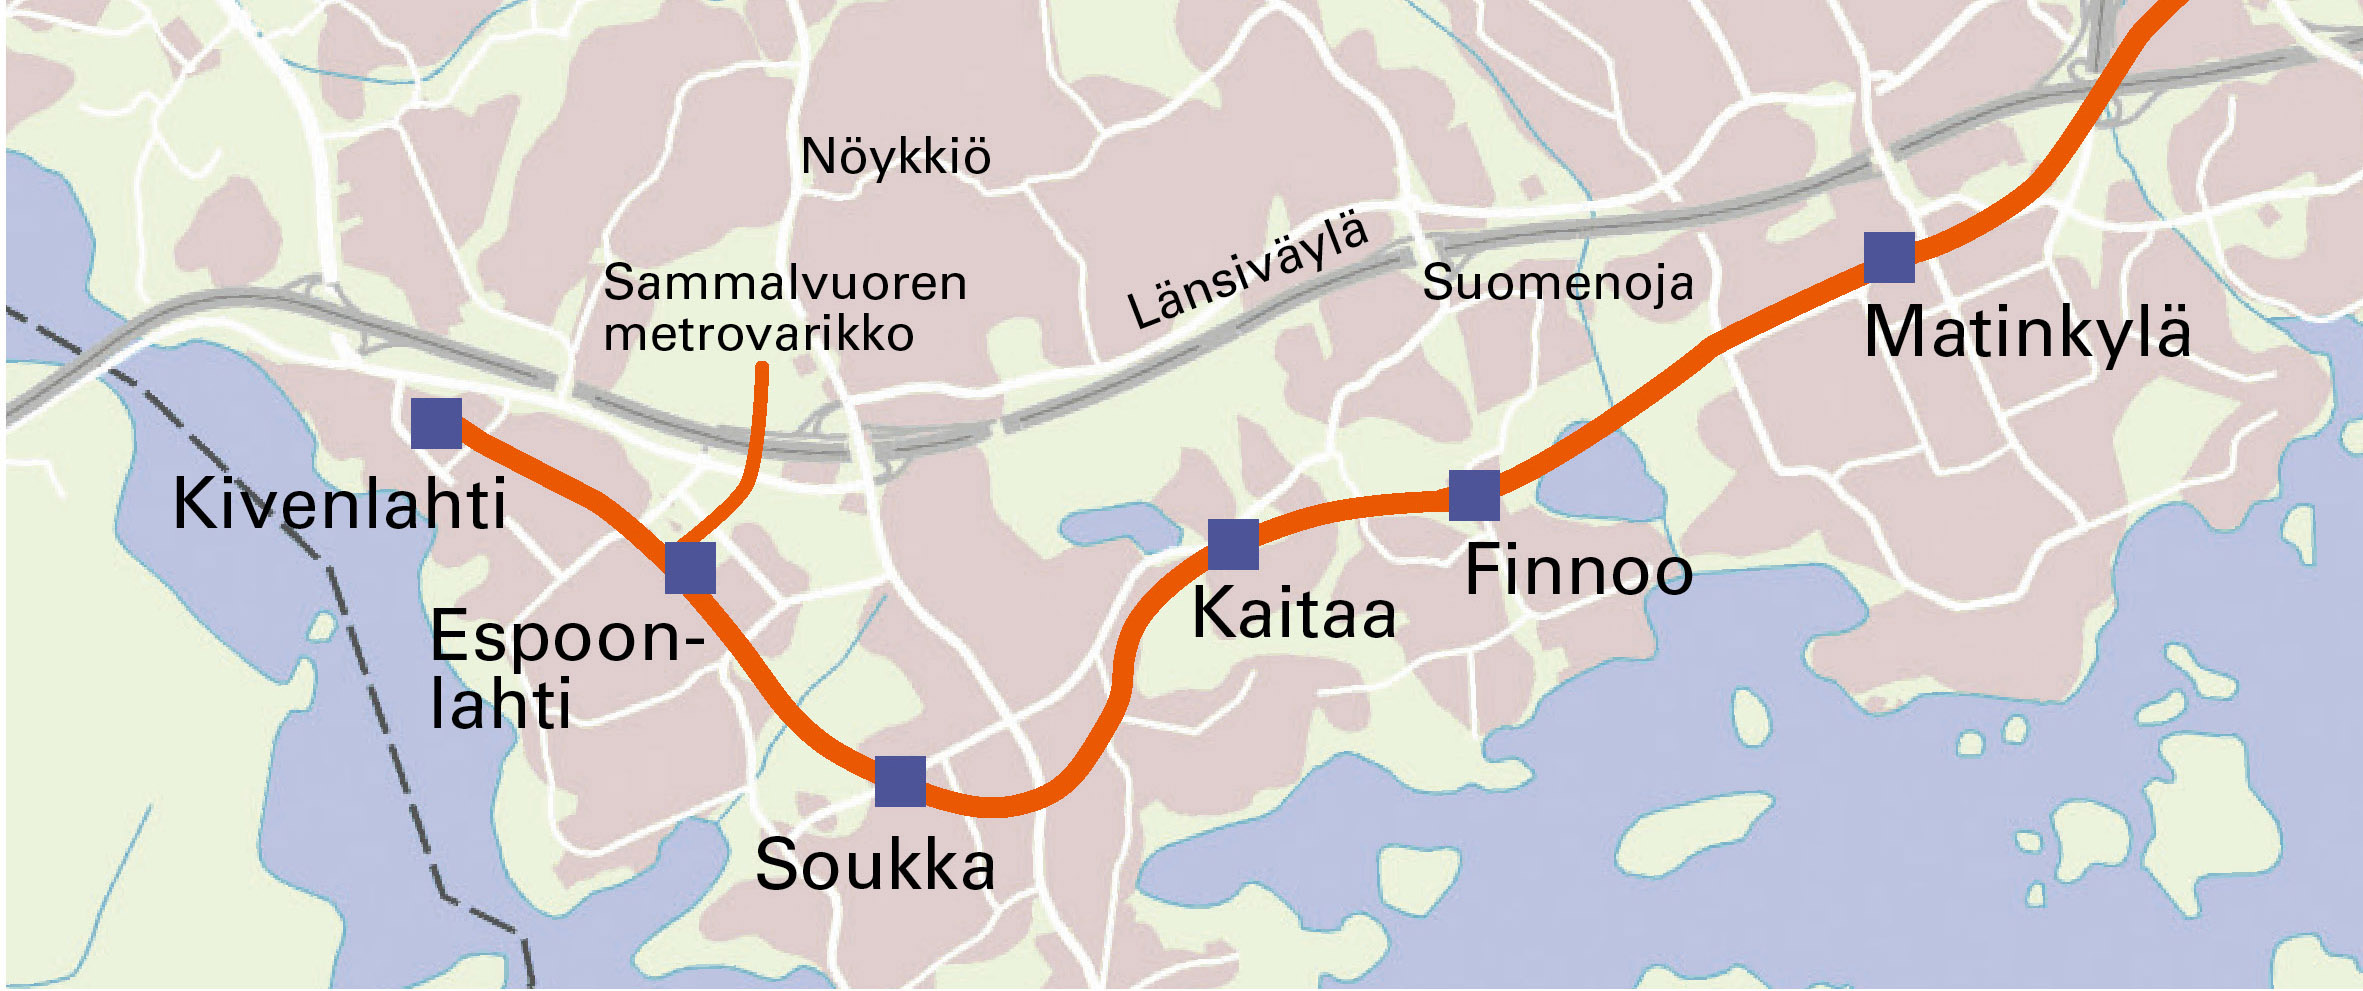 Construction Of The Matinkyla Kivenlahti Section Will Begin